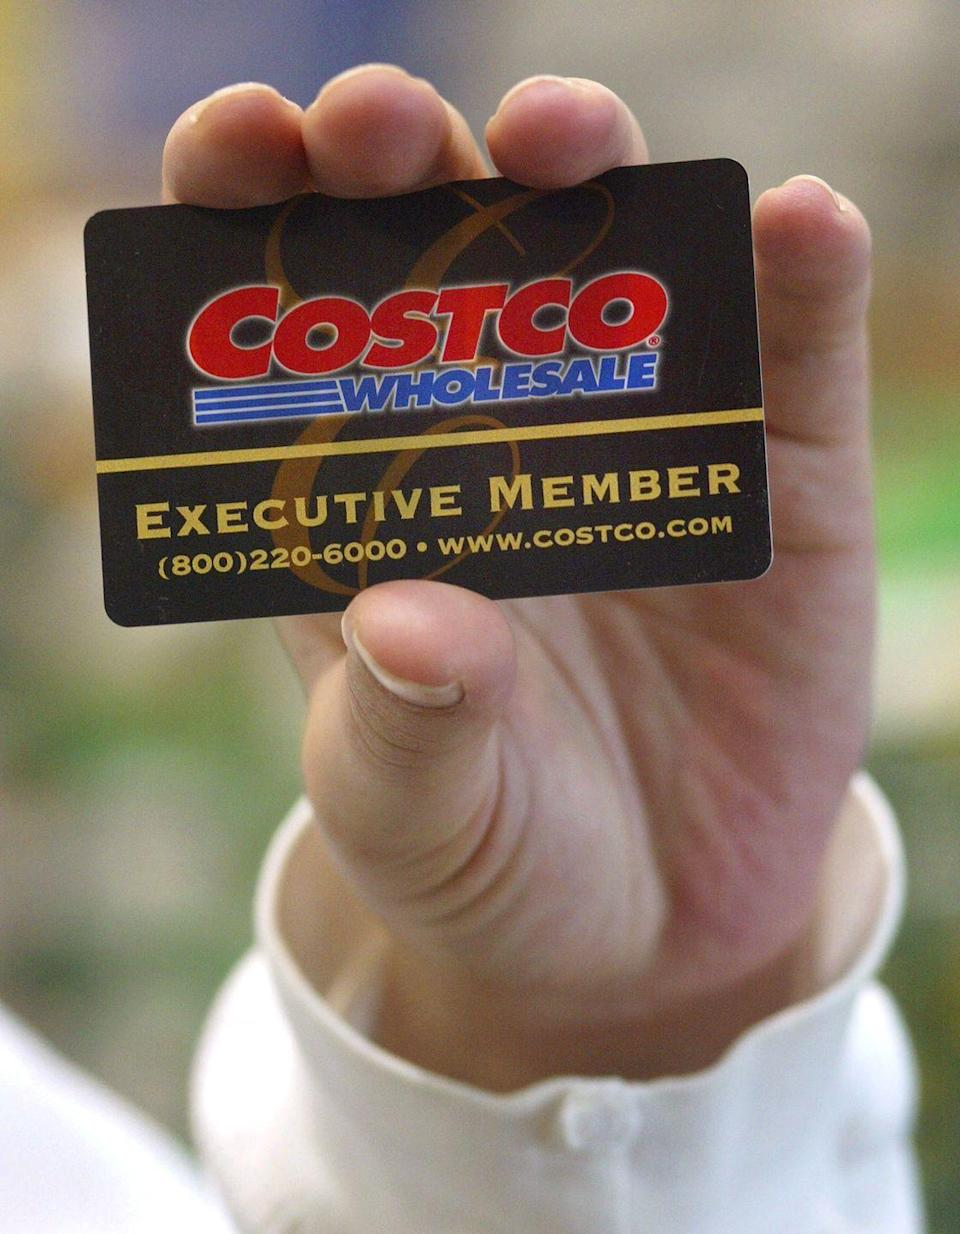 <p>While you must flash that shiny membership card for mostly all other Costco purposes, the wine section is one exception (in some locations). Certain states sell alcohol to non-members, while others do not.</p>